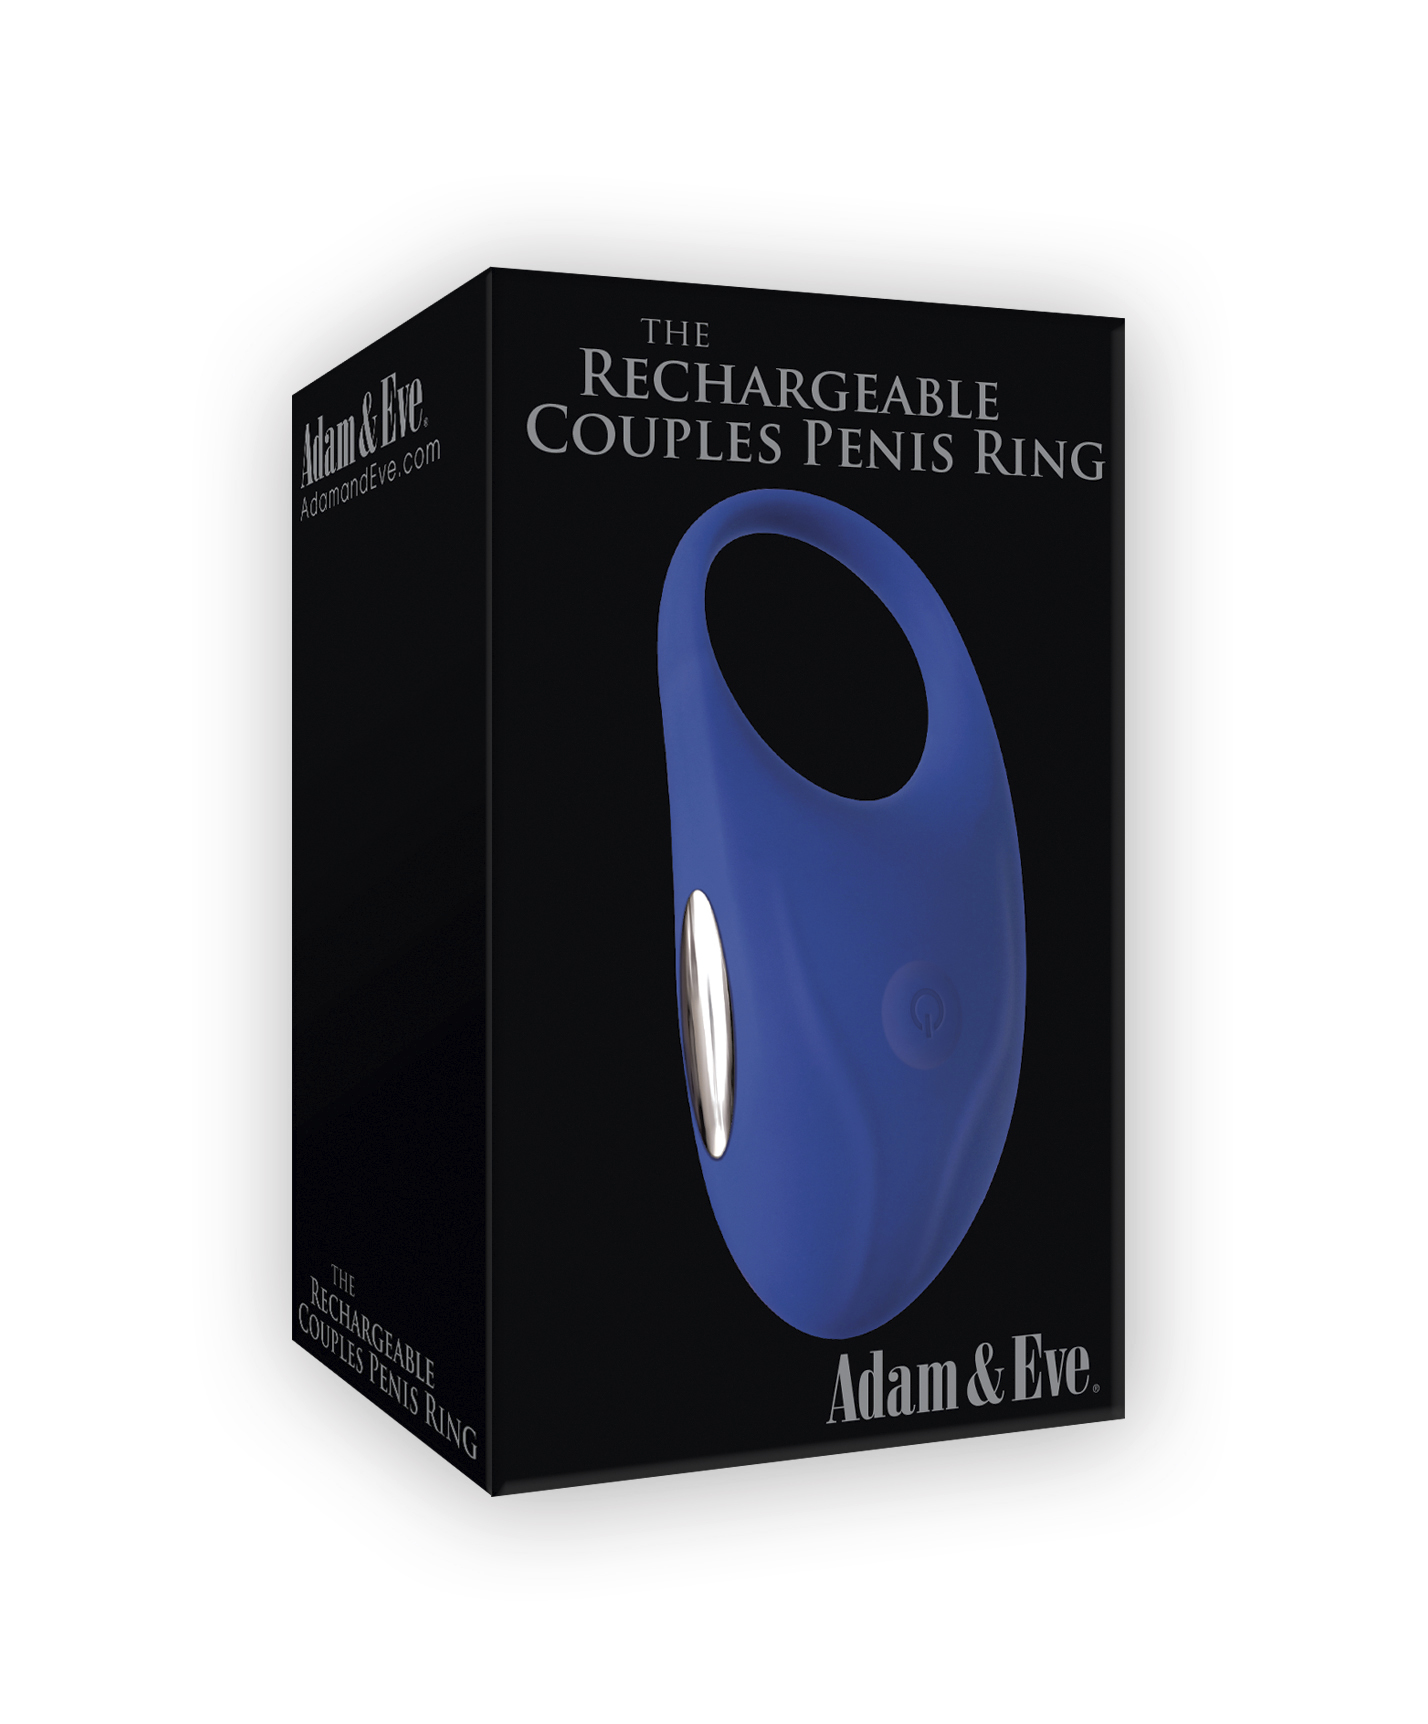 COUPLES PENIS RING RECHARGEABLE